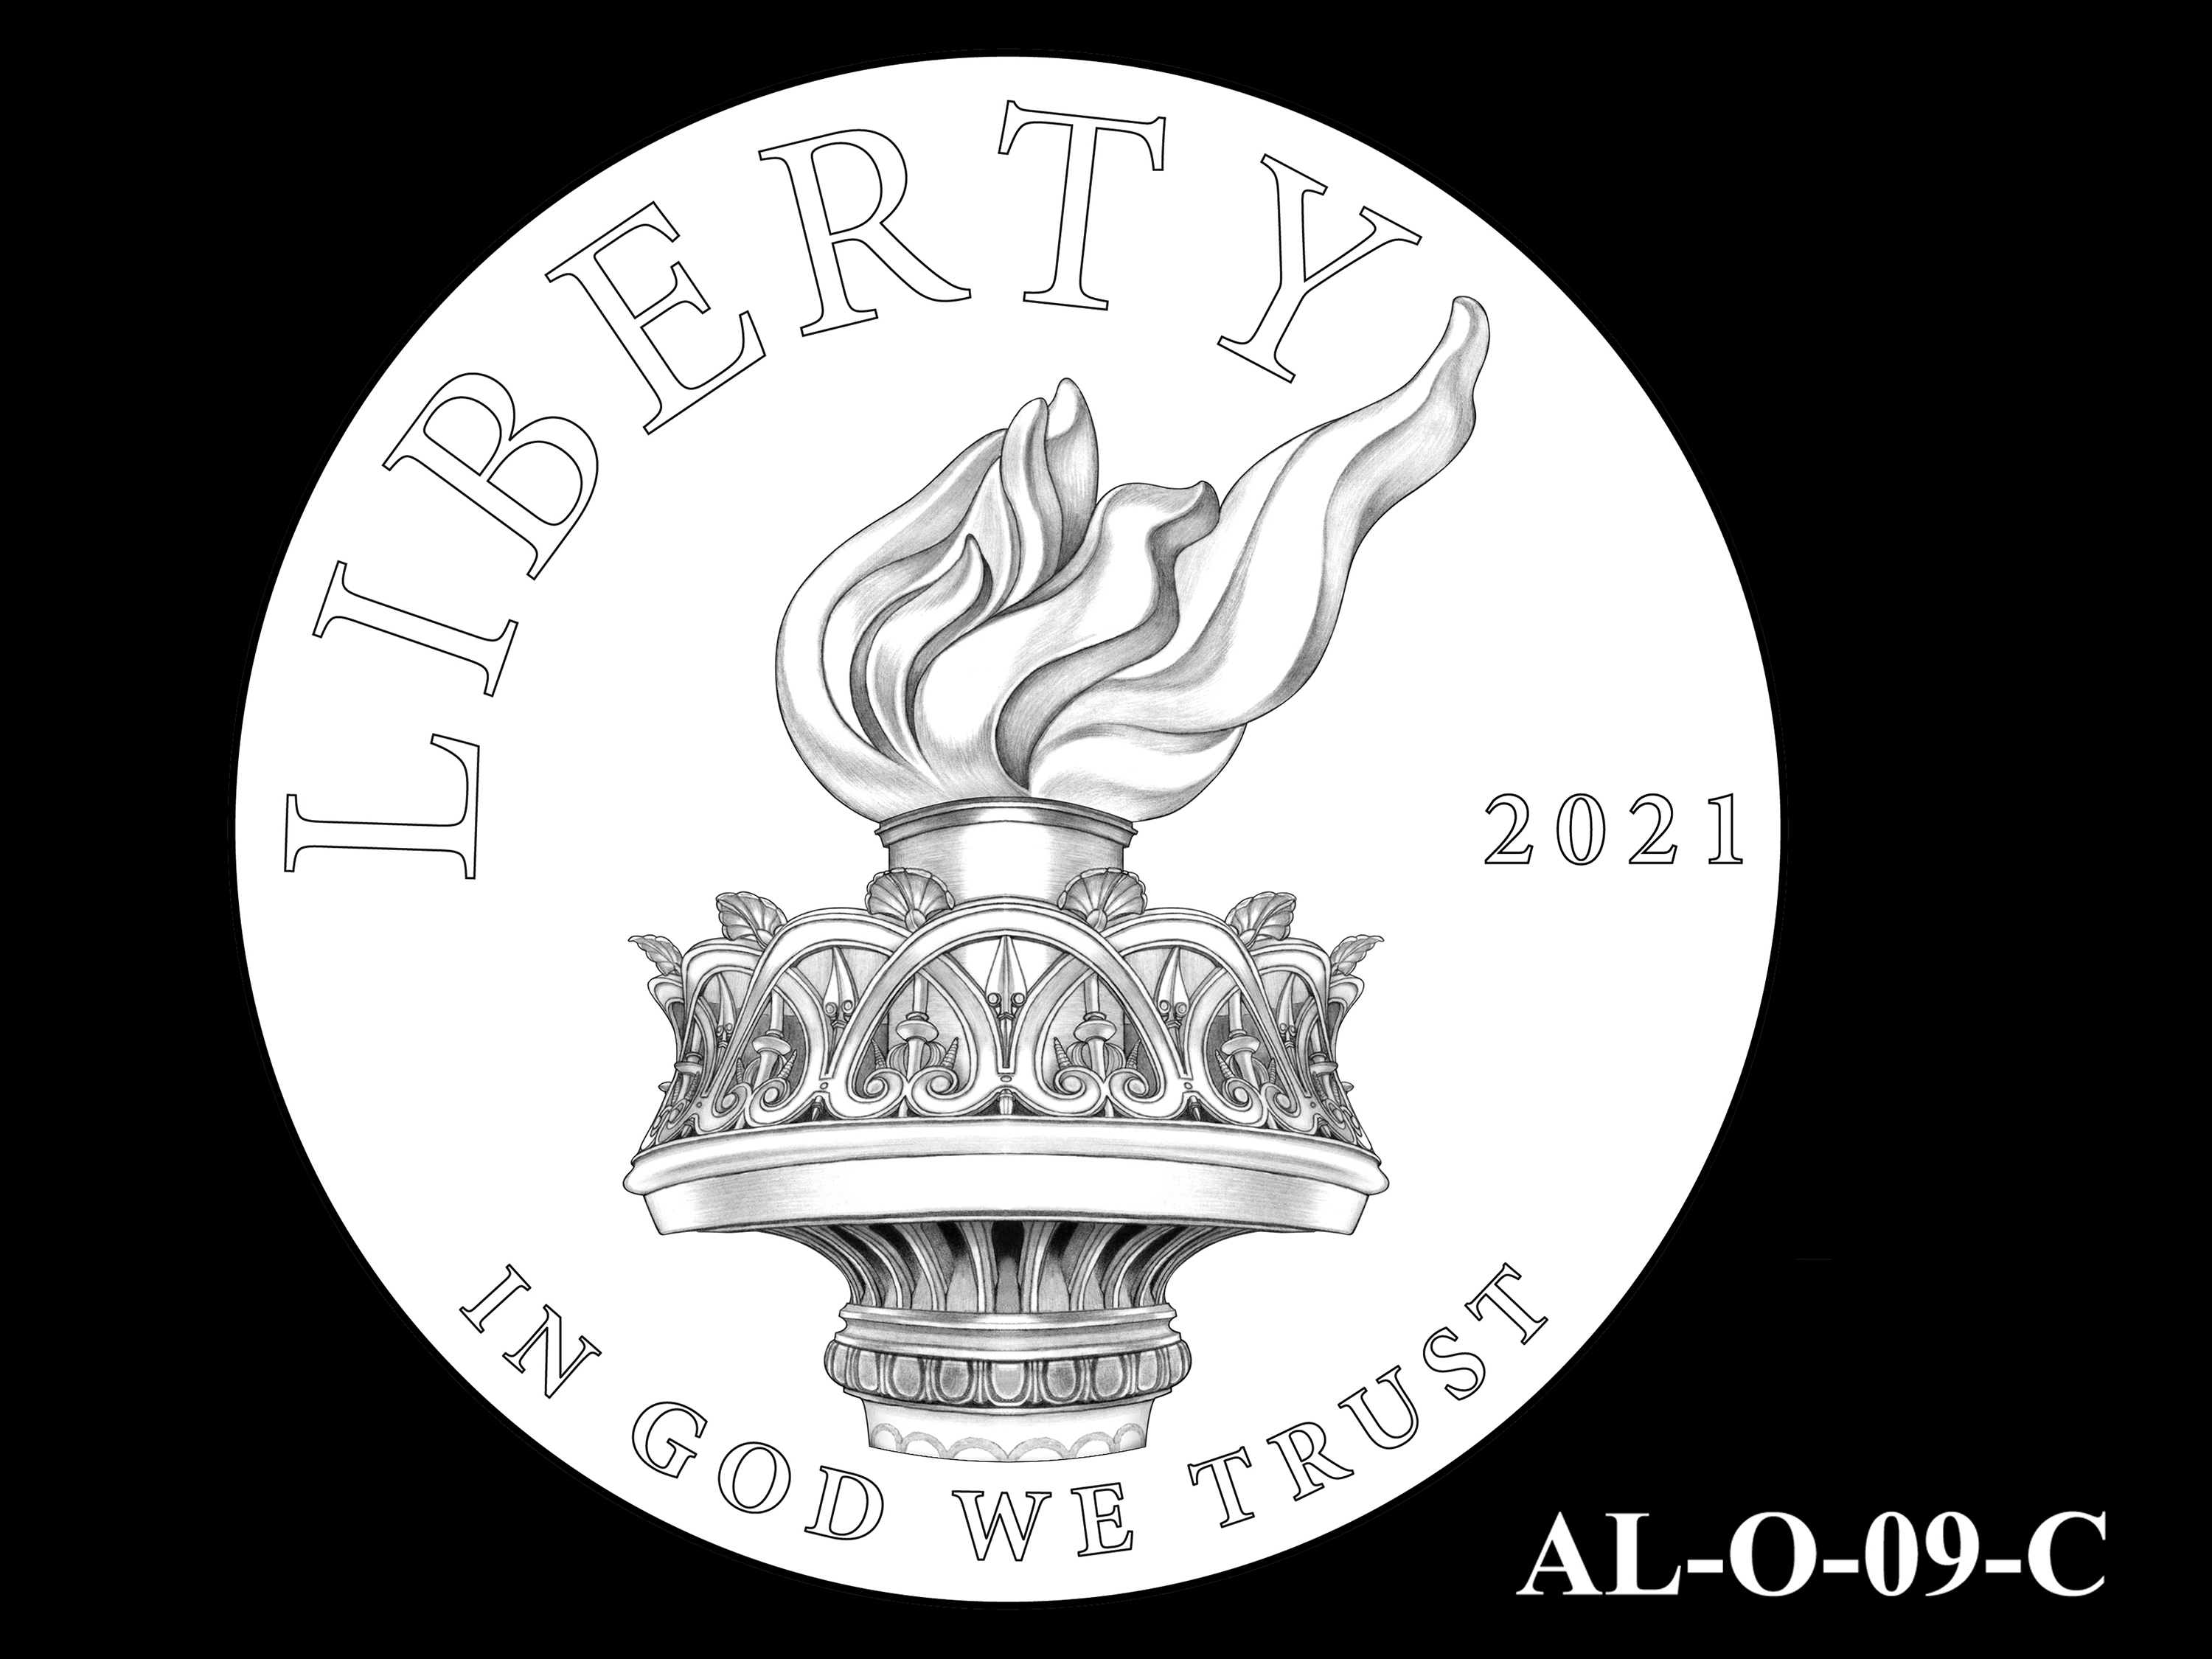 AL-O-09-C -- 2021 American Liberty Gold Coin and Silver Medal Program - Obverse